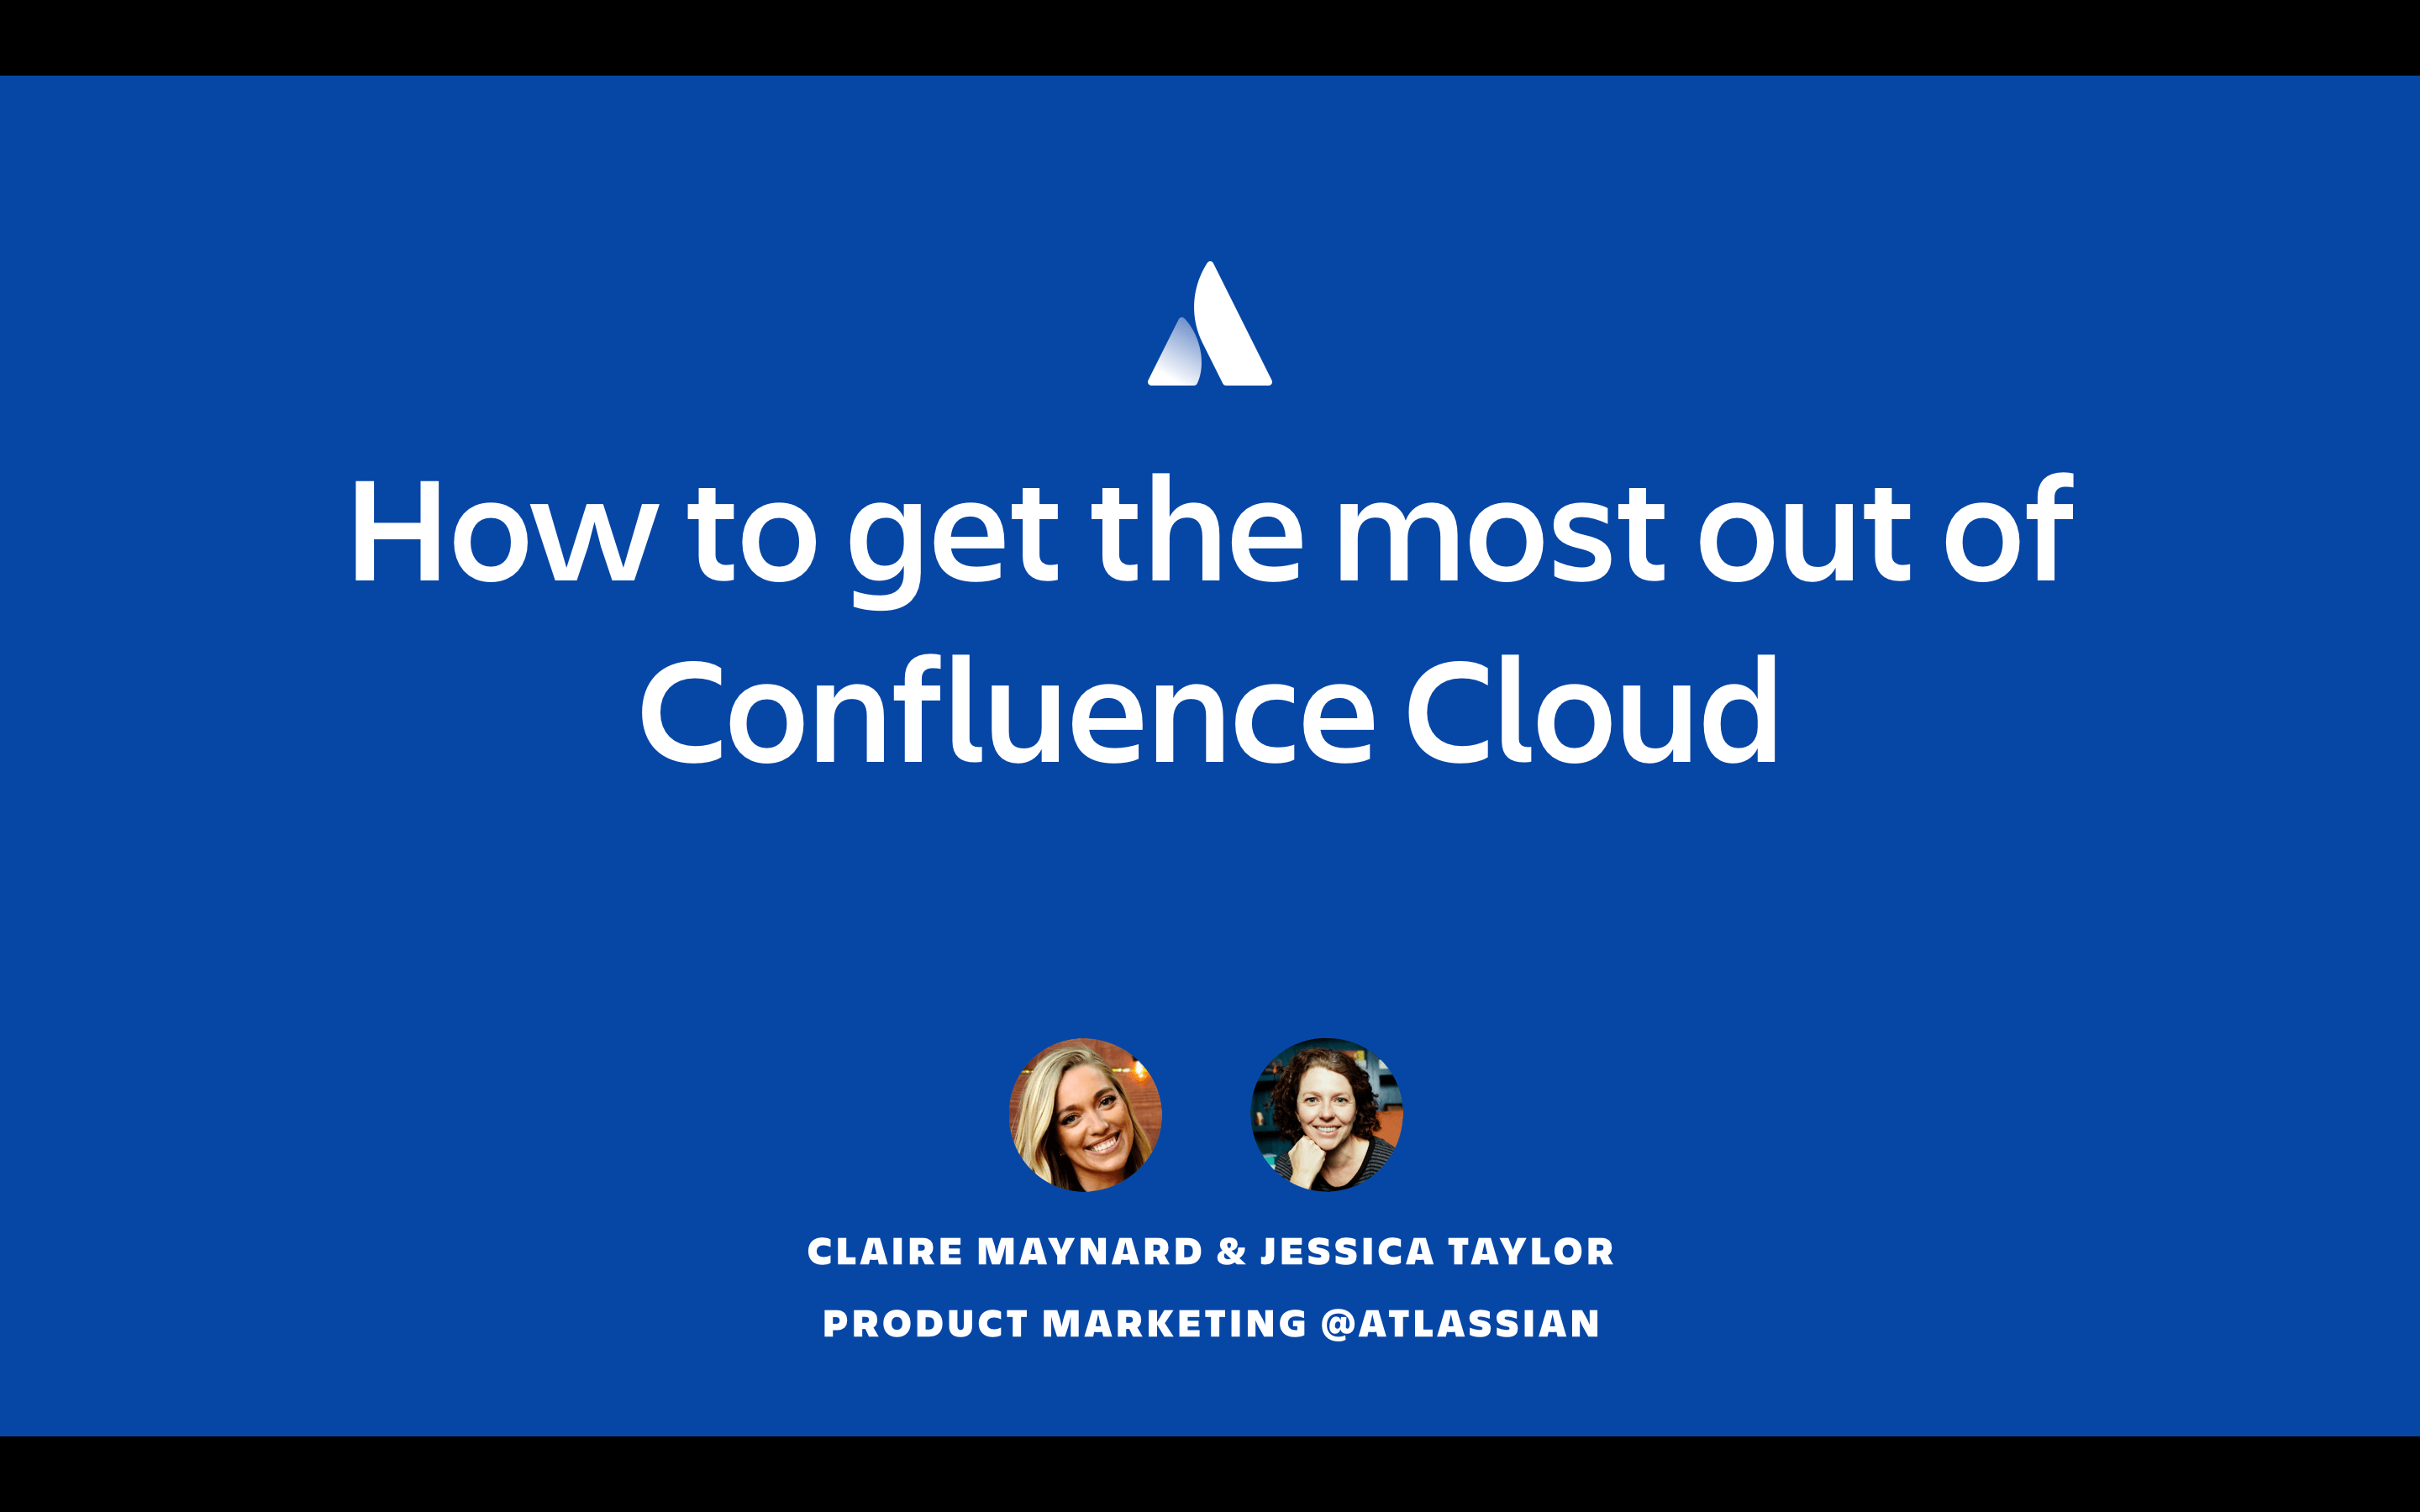 How to get the most of out Confluence Cloud thumbnail